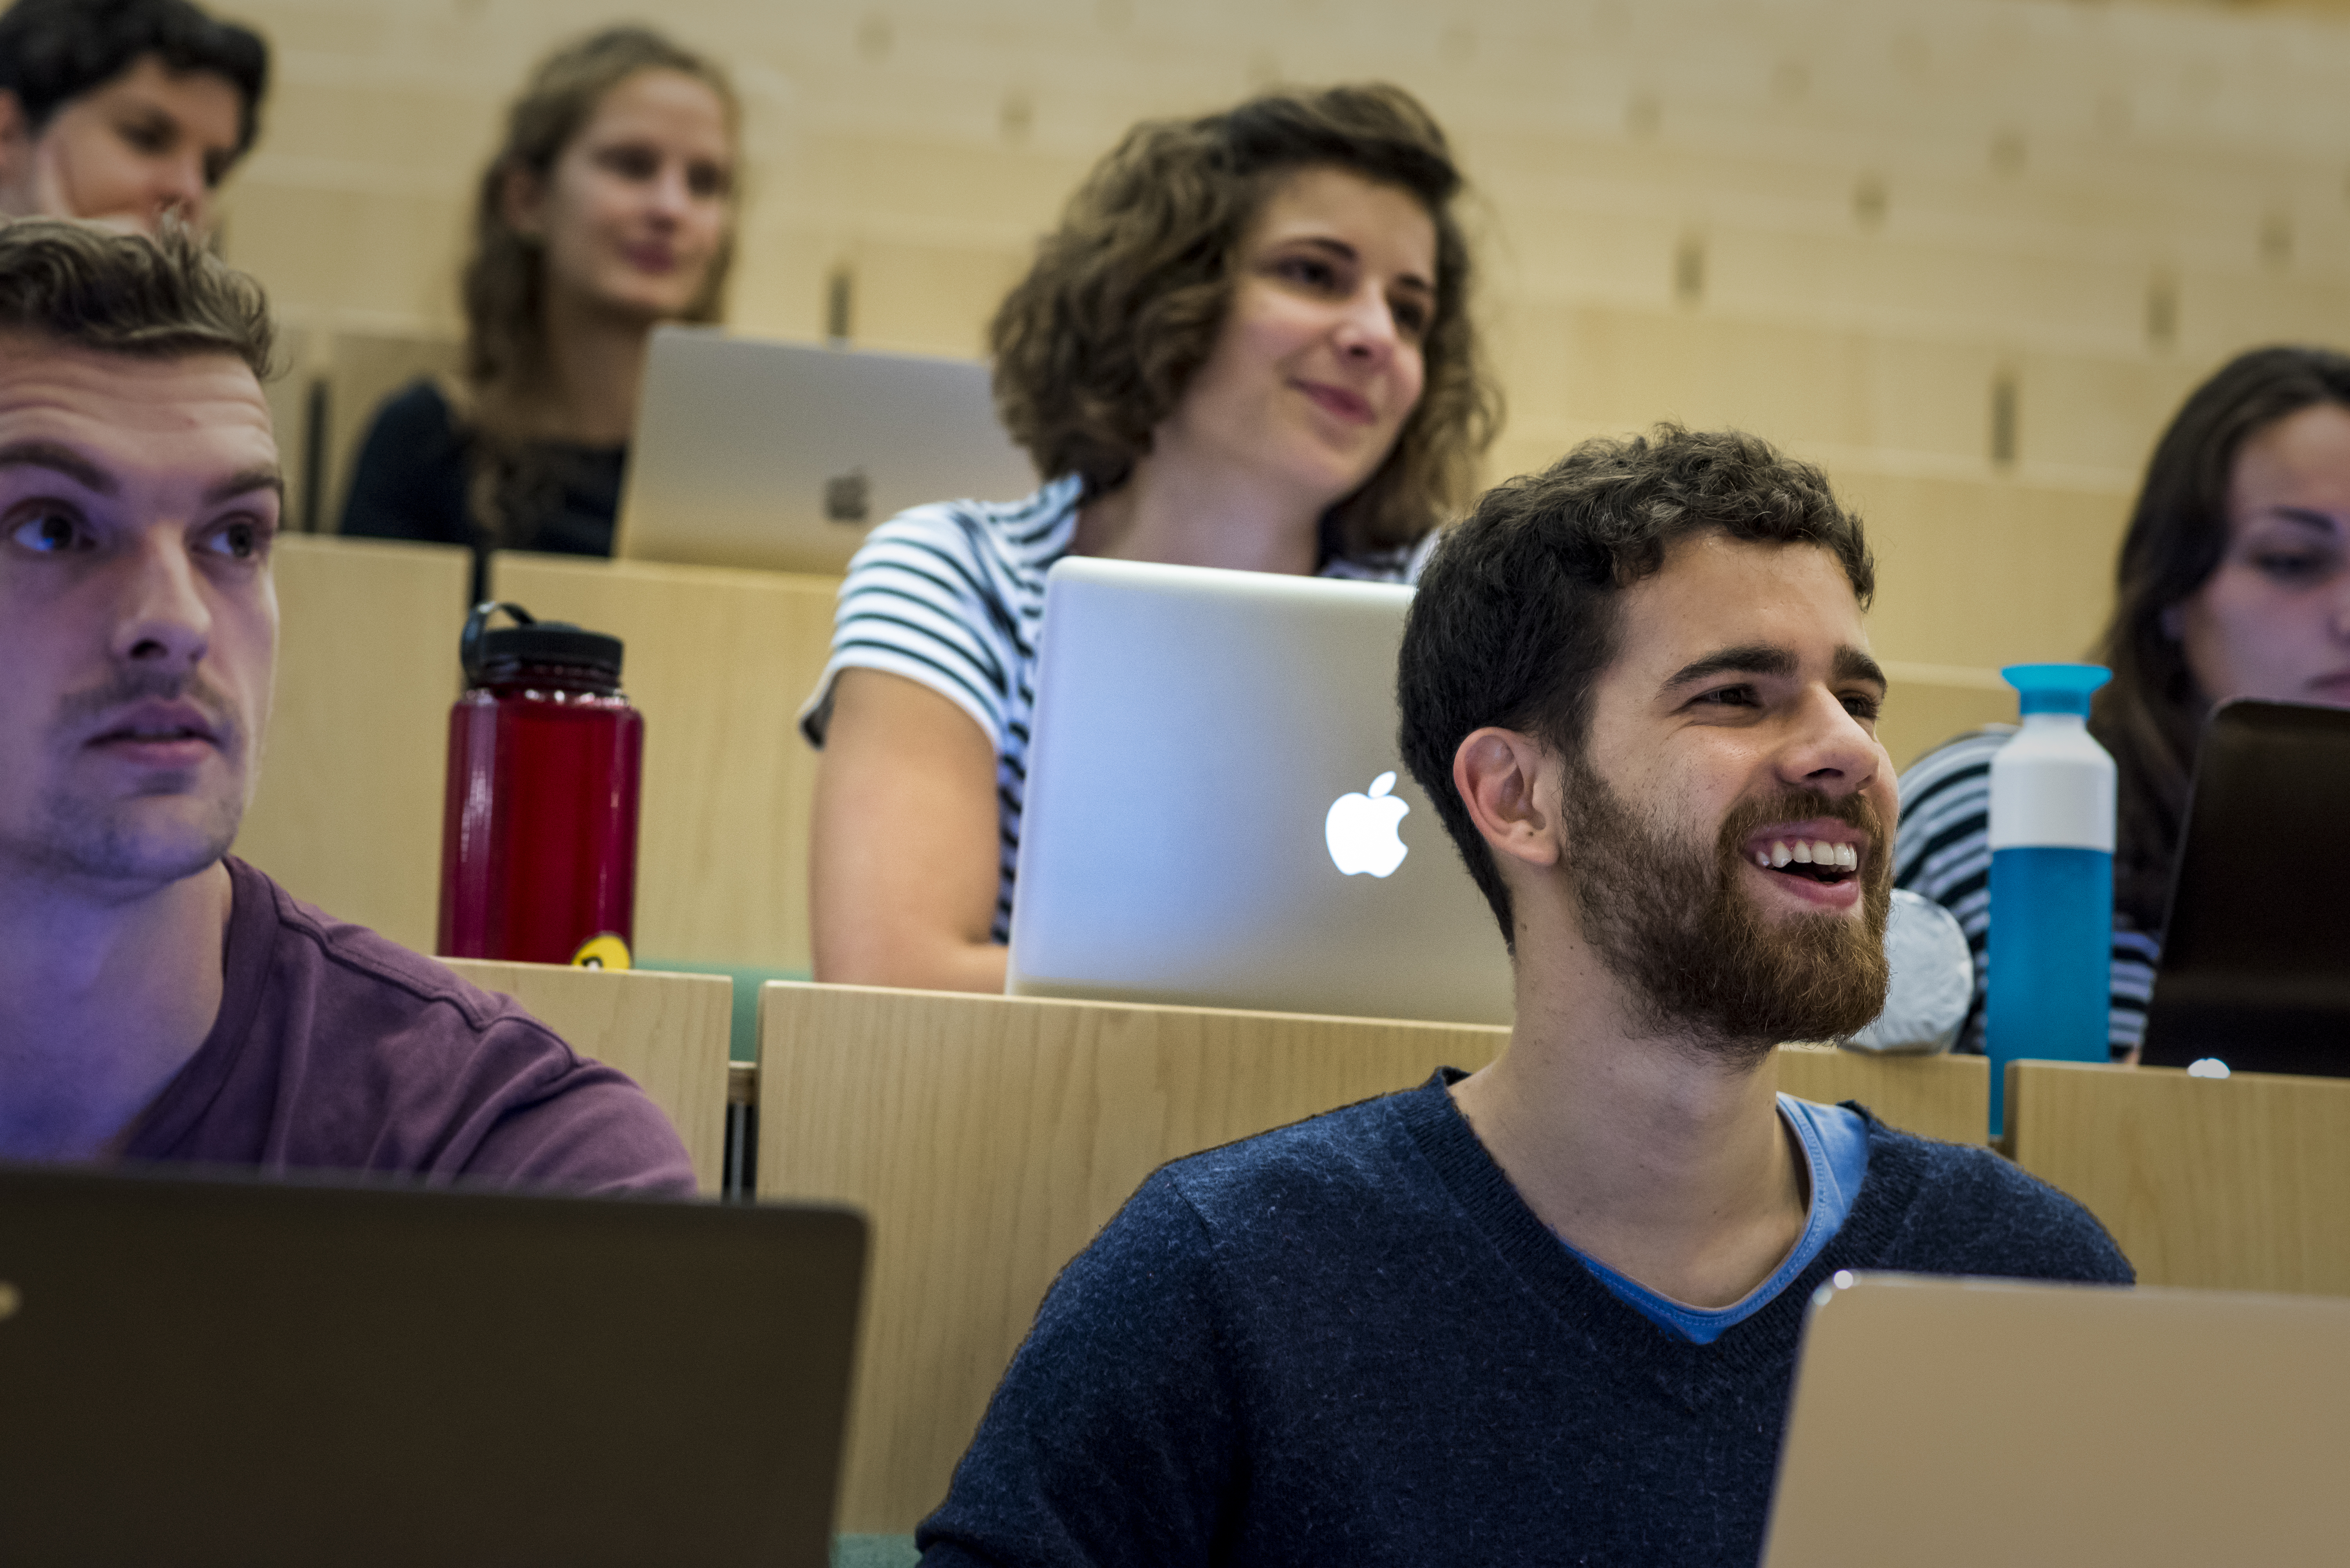 Danish Government Scholarships for 2019/2020 has opened